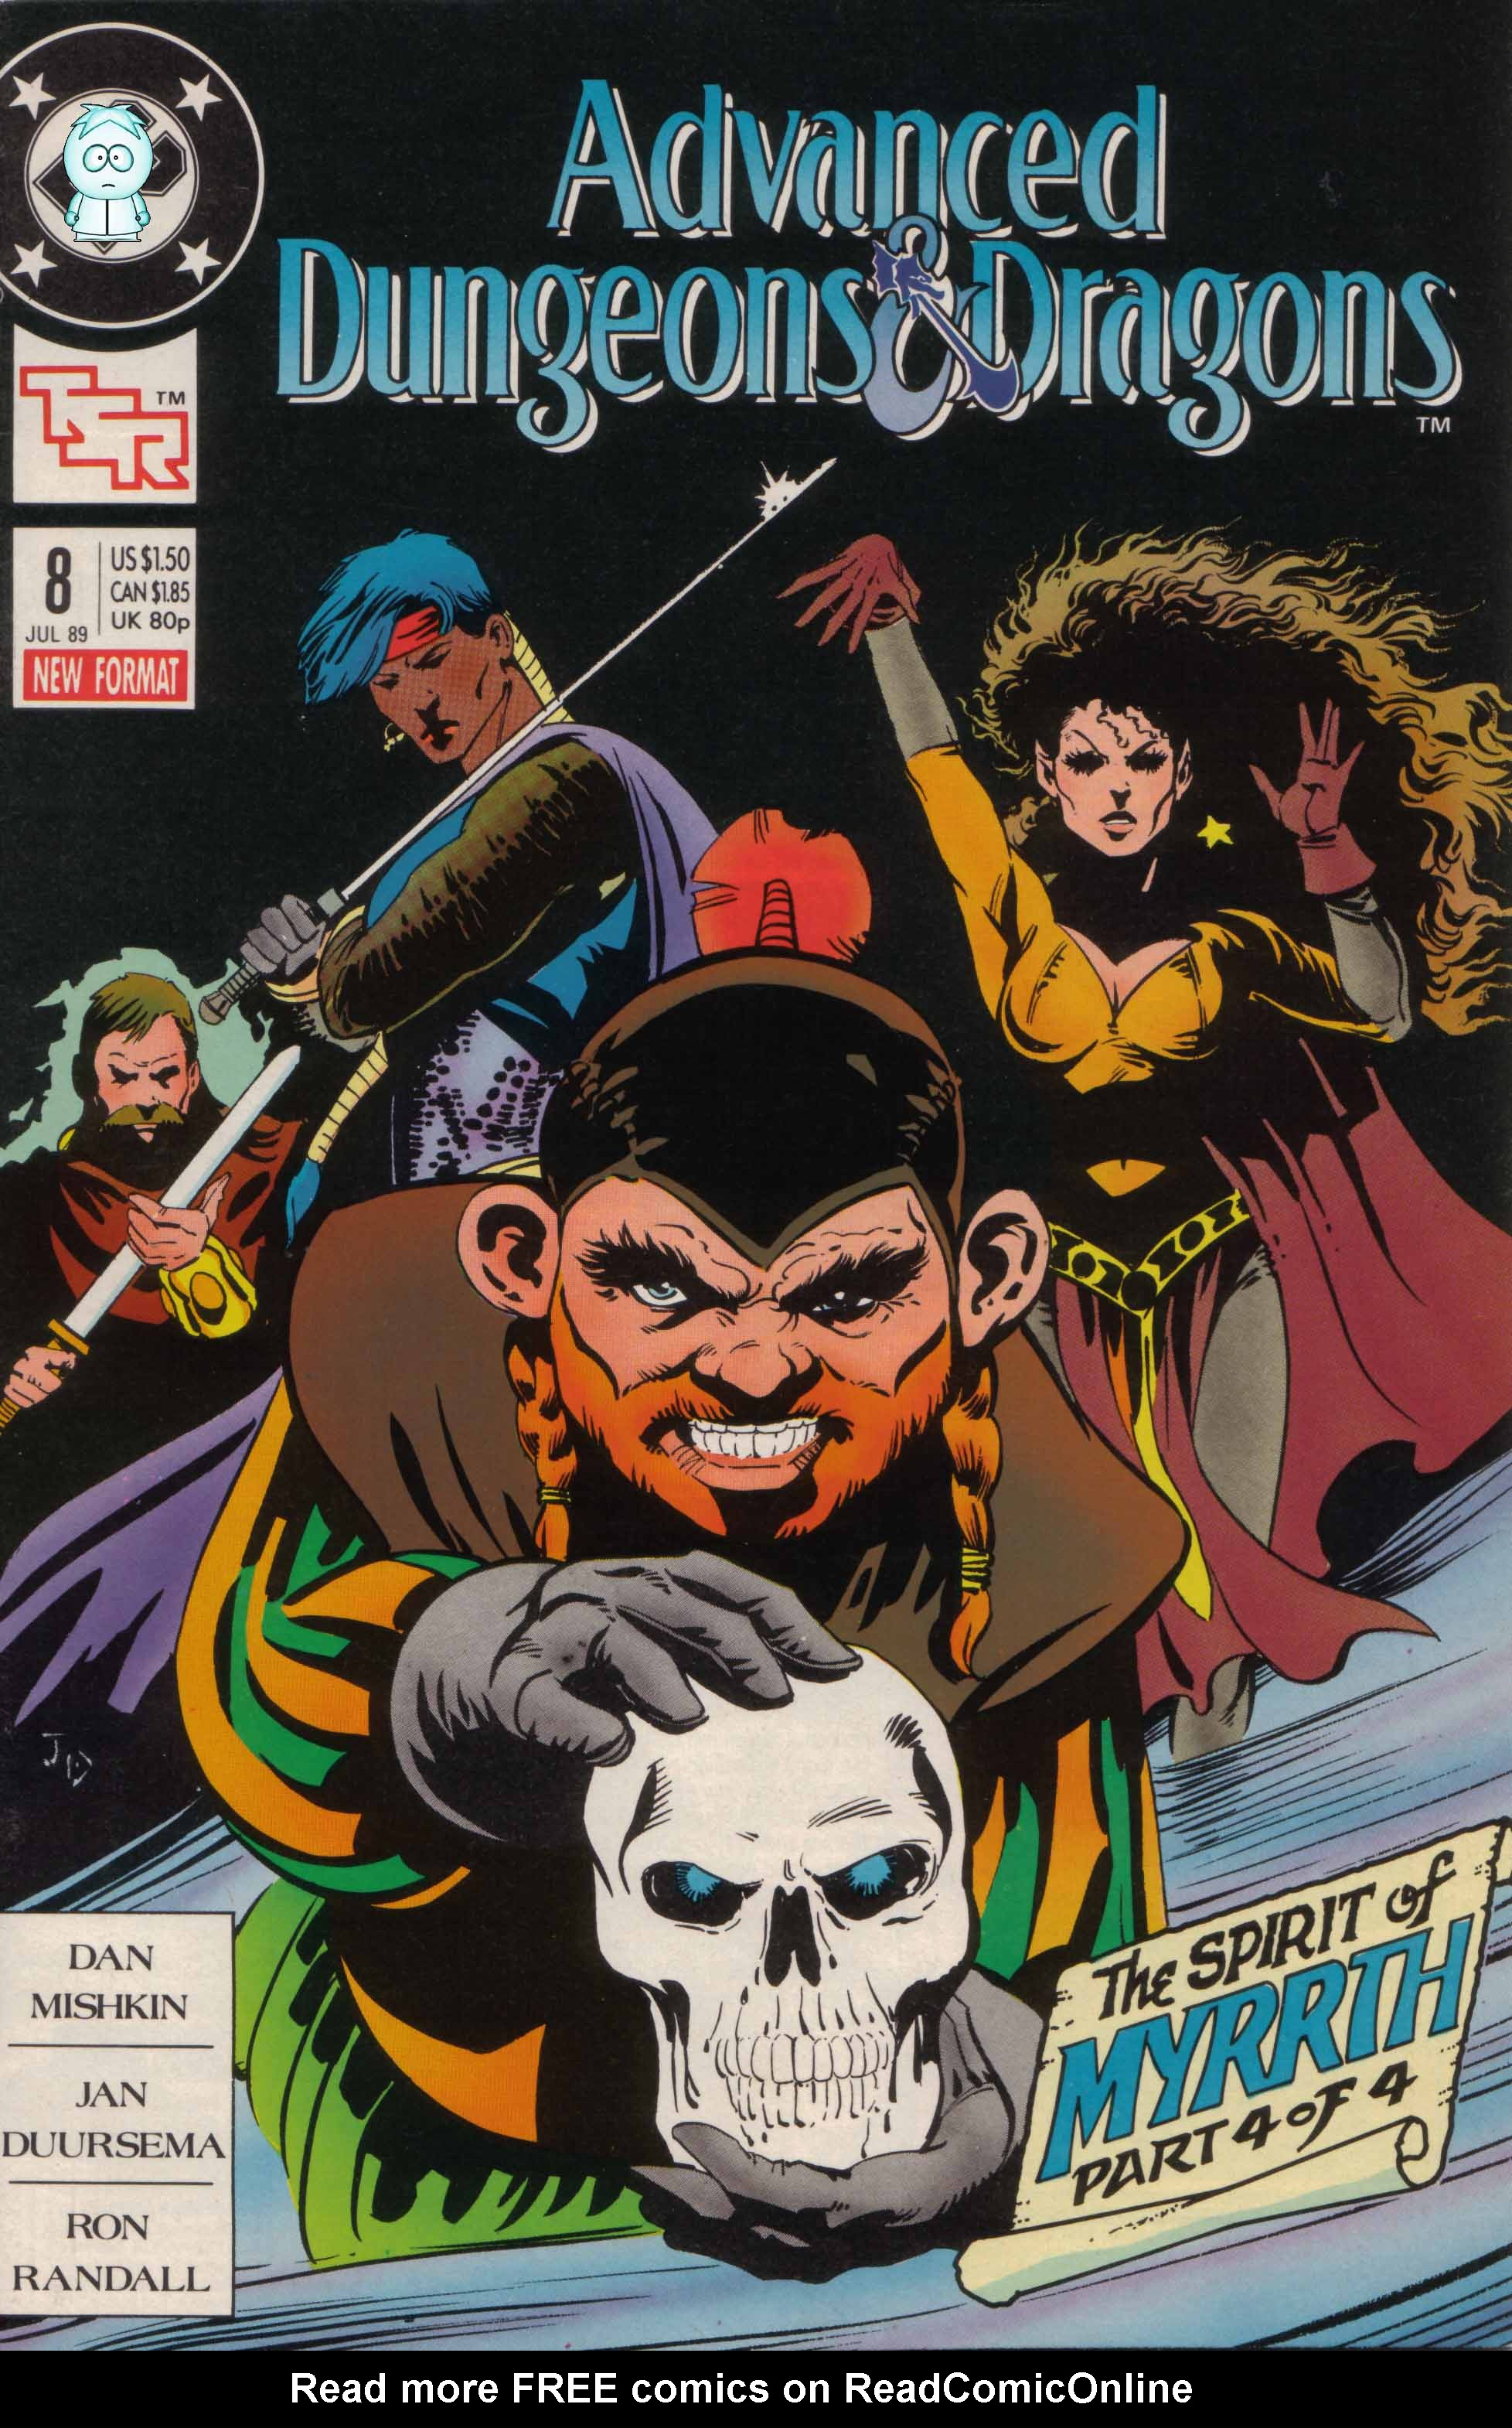 Read online Advanced Dungeons & Dragons comic -  Issue #8 - 1